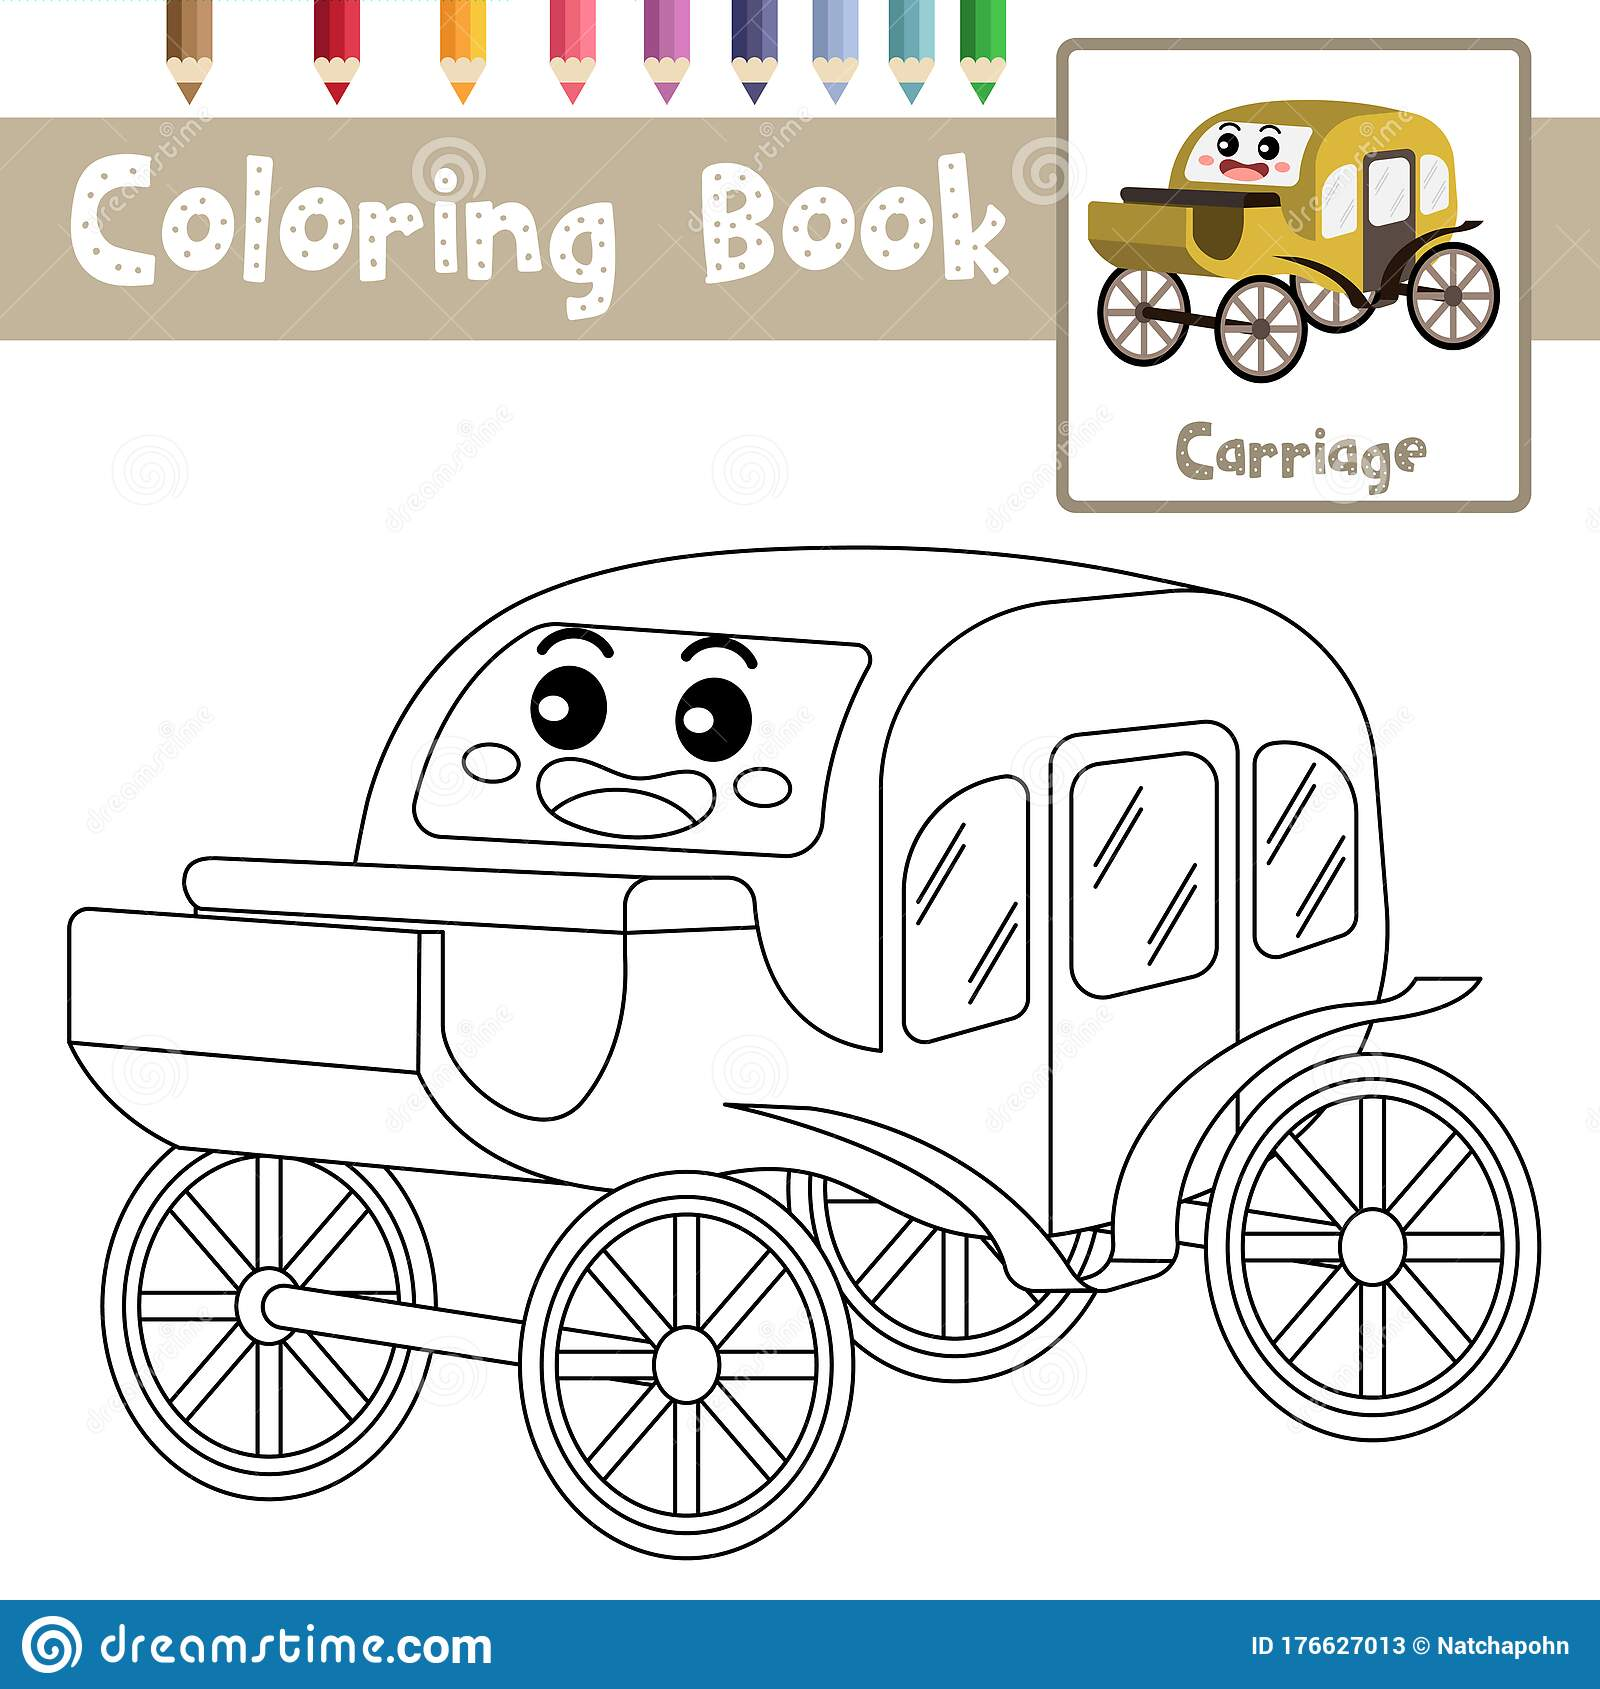 Coloring Page Carriage Cartoon Character Perspective View